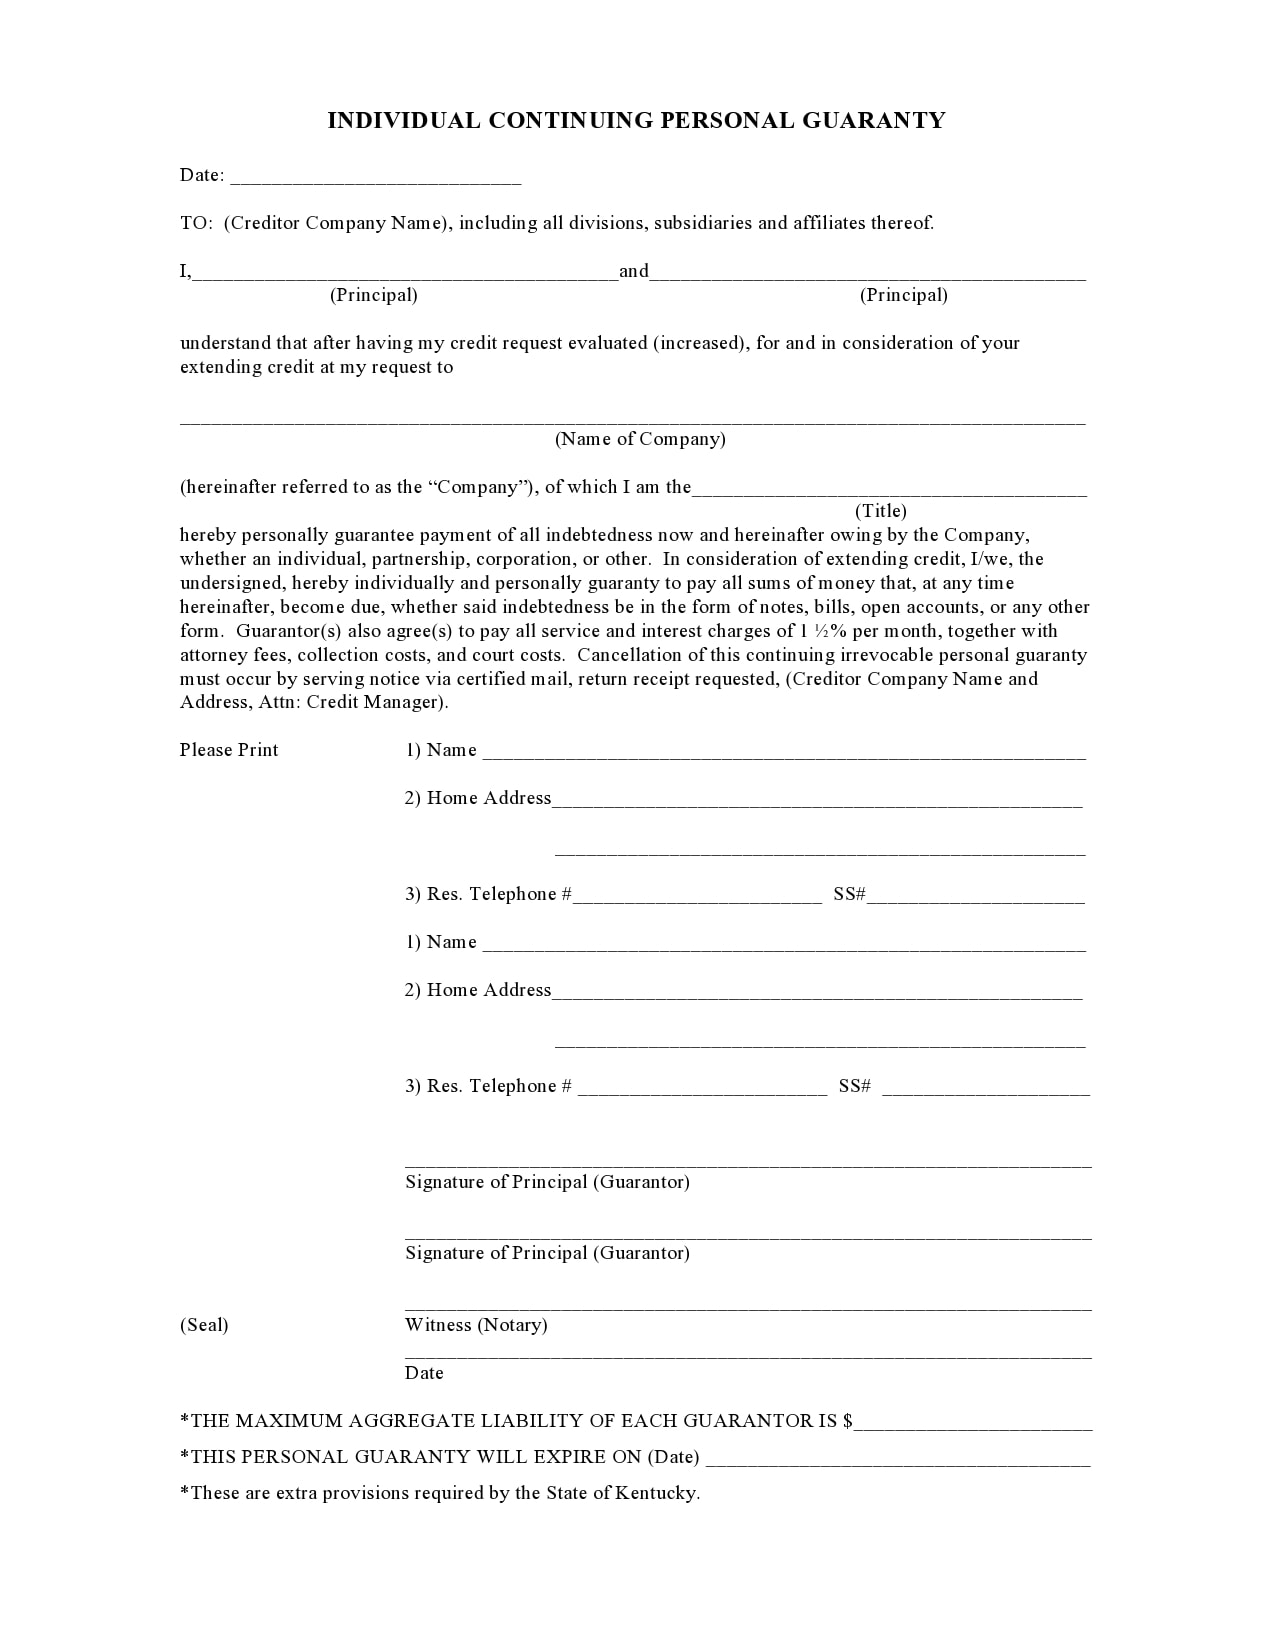 personal guarantee form 02